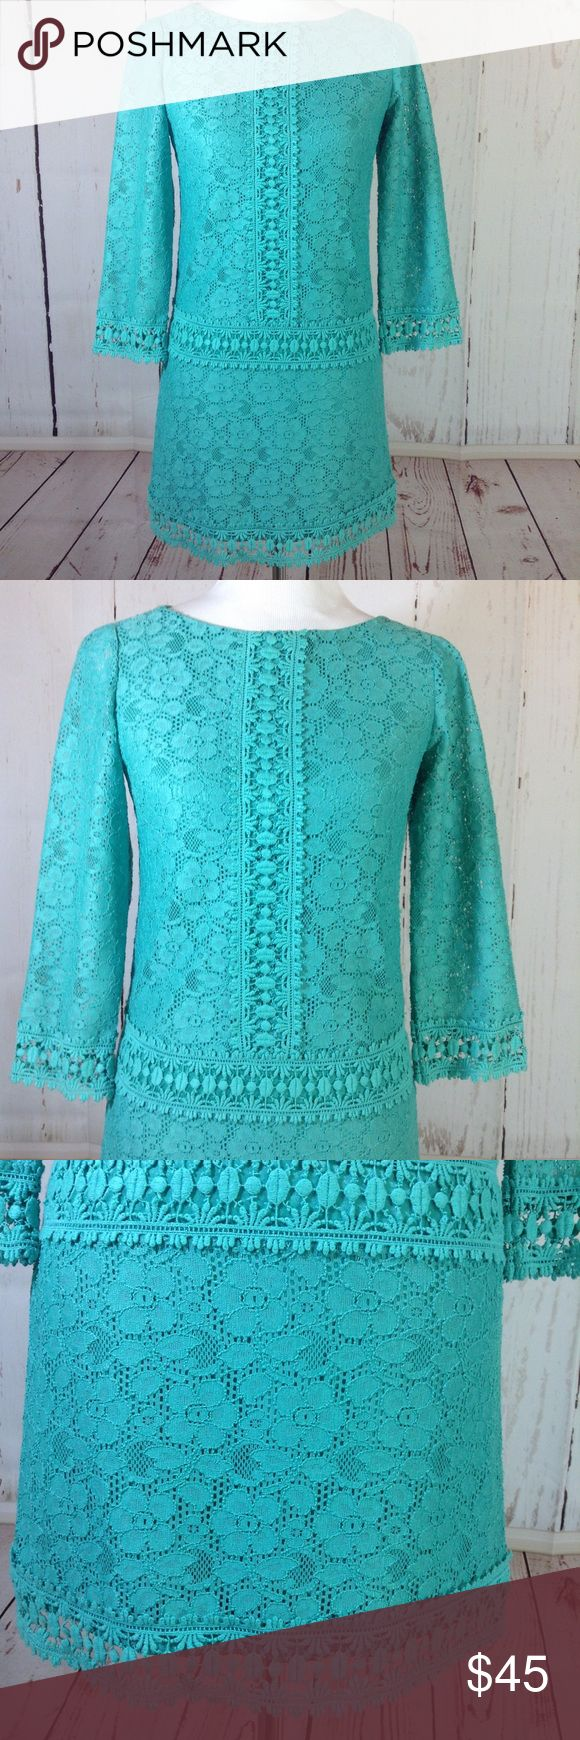 "Laundry by Shelli Segal Turquoise Lace Dress Sz 2 Laundry by Shelli Segal Size 2 Sheath Dress Turqouise Floral Lace Long Sleeve Fully lined Sheer sleeves Keyhole back with hidden zipper  Shown on a medium size mannequin  Approximate flat measurements:  Chest: 16.5"" Shoulders: 14"" Waist: 16"" Hips: 17.5 Length from top of shoulder to hem down back: 31.5"" Arm length: 18"" Laundry By Shelli Segal Dresses Long Sleeve"